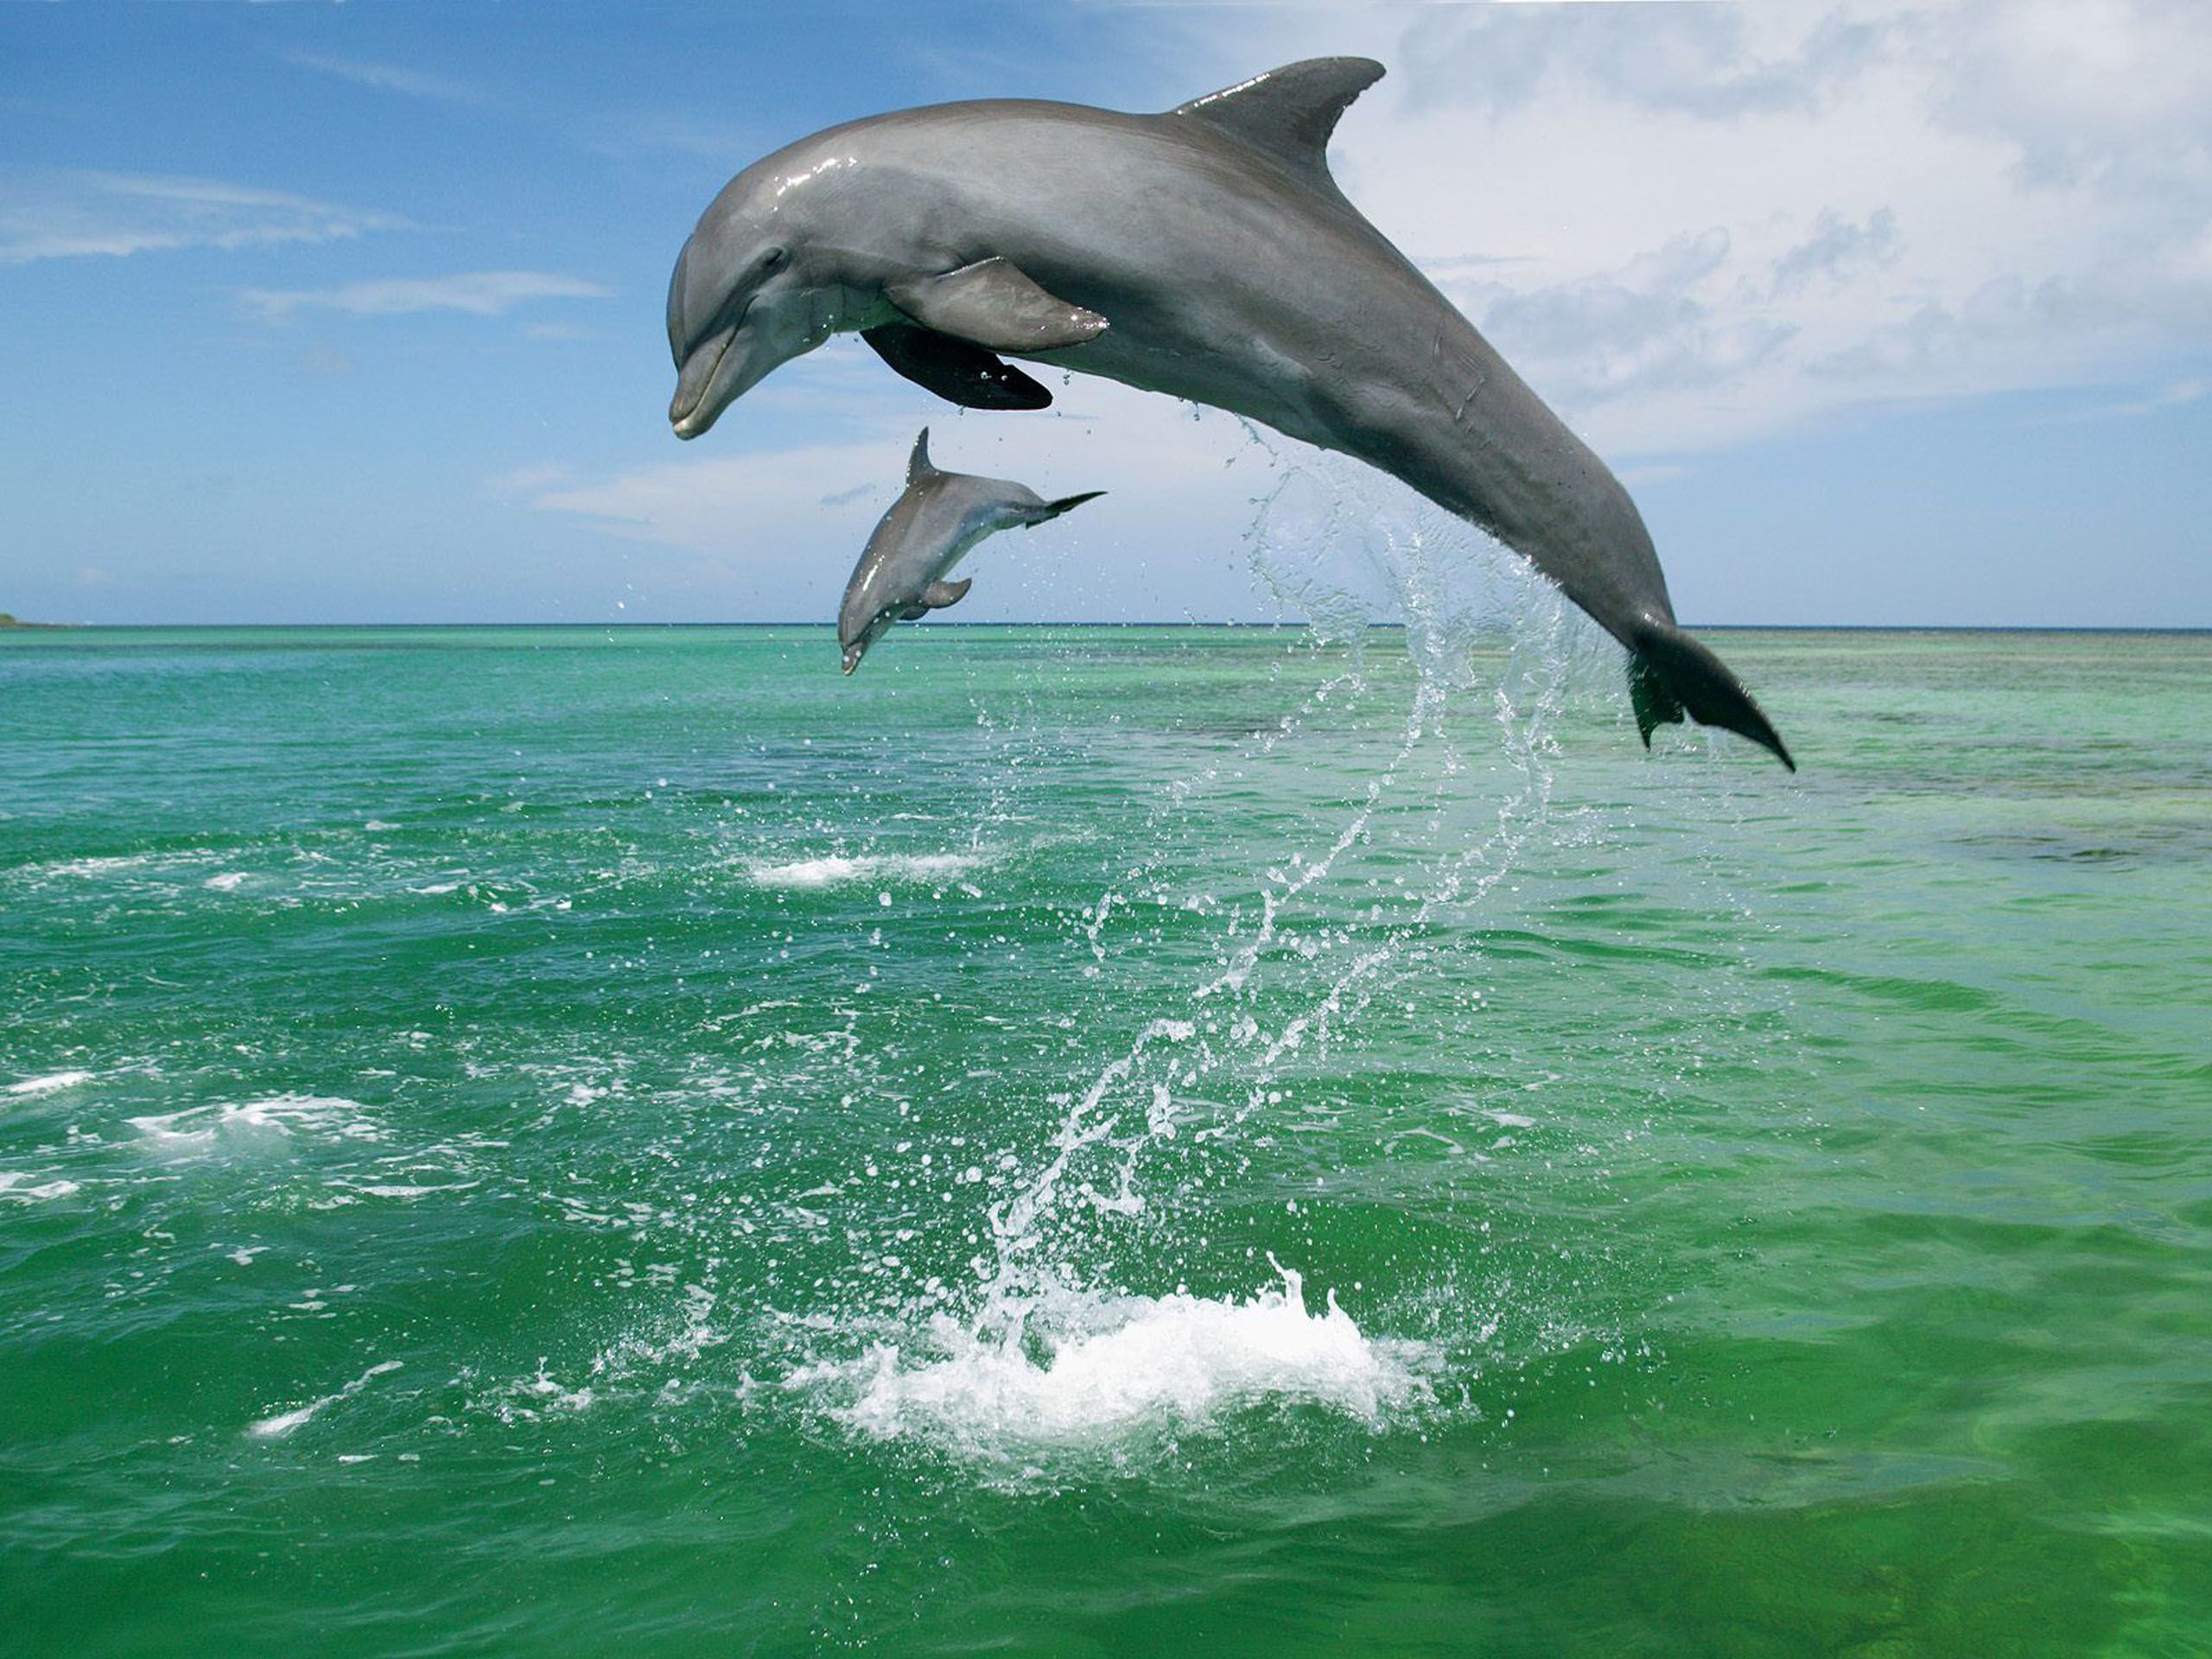 baby sea animals bottlenose dolphins in caribbean sea ocean